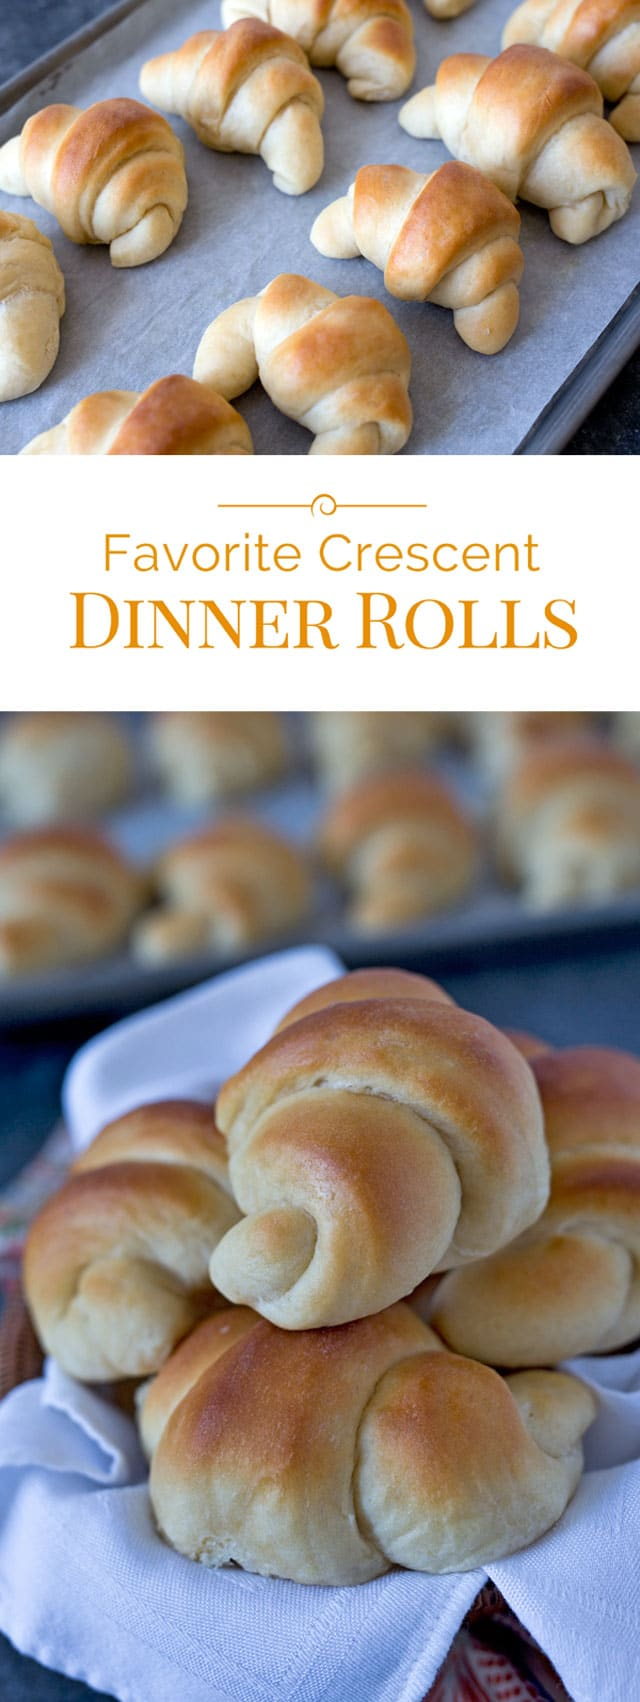 Favorite-Dinner-Rolls-Collage-Barbara-Bakes